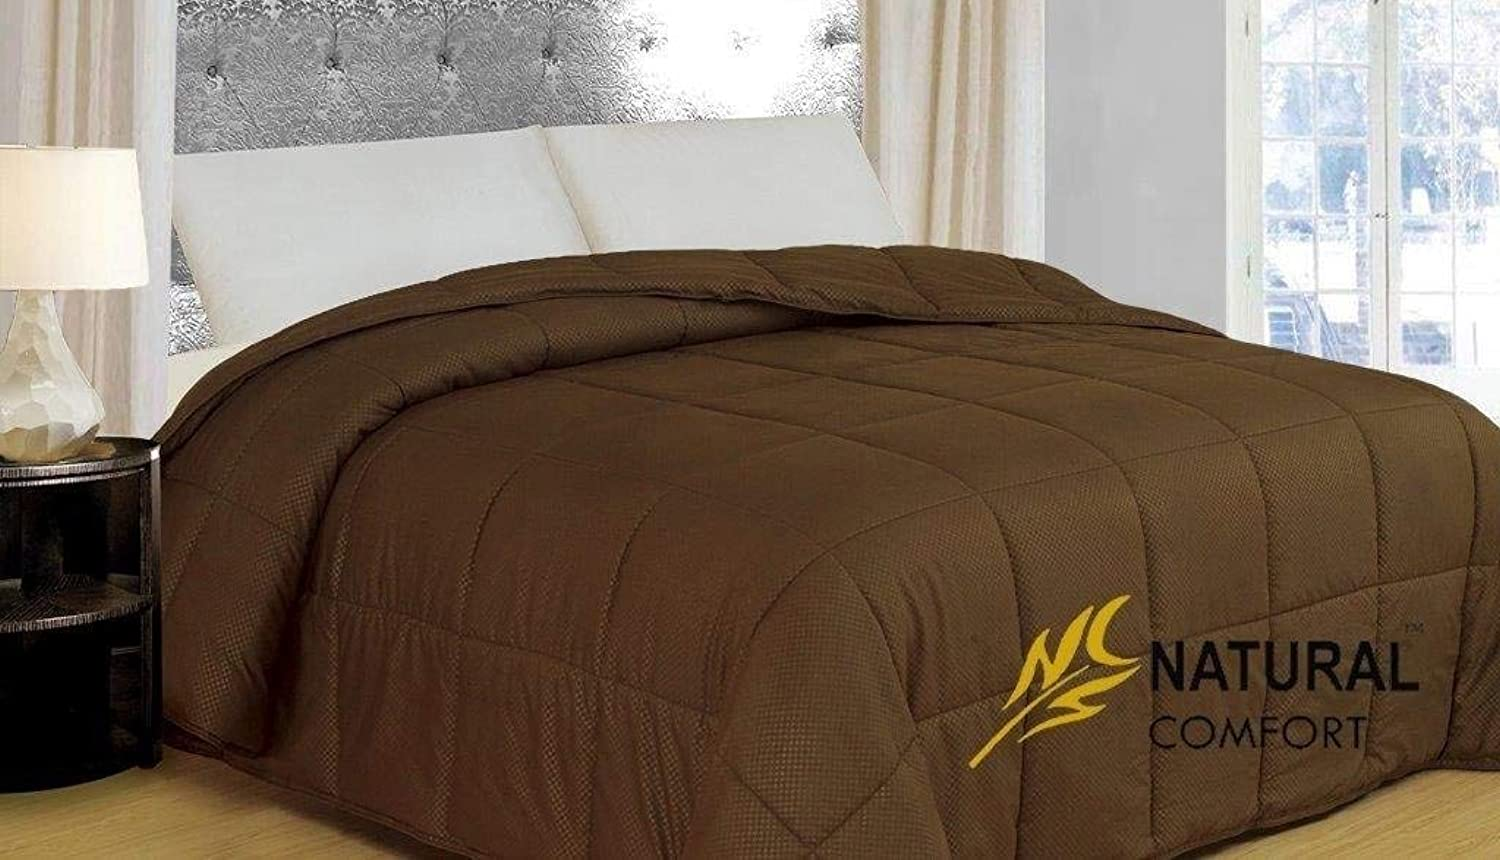 Natural Comfort Light Weight Filled Down Alternative Comforter with Embossed Microfiber Shell, Twin, Chocolate Brown